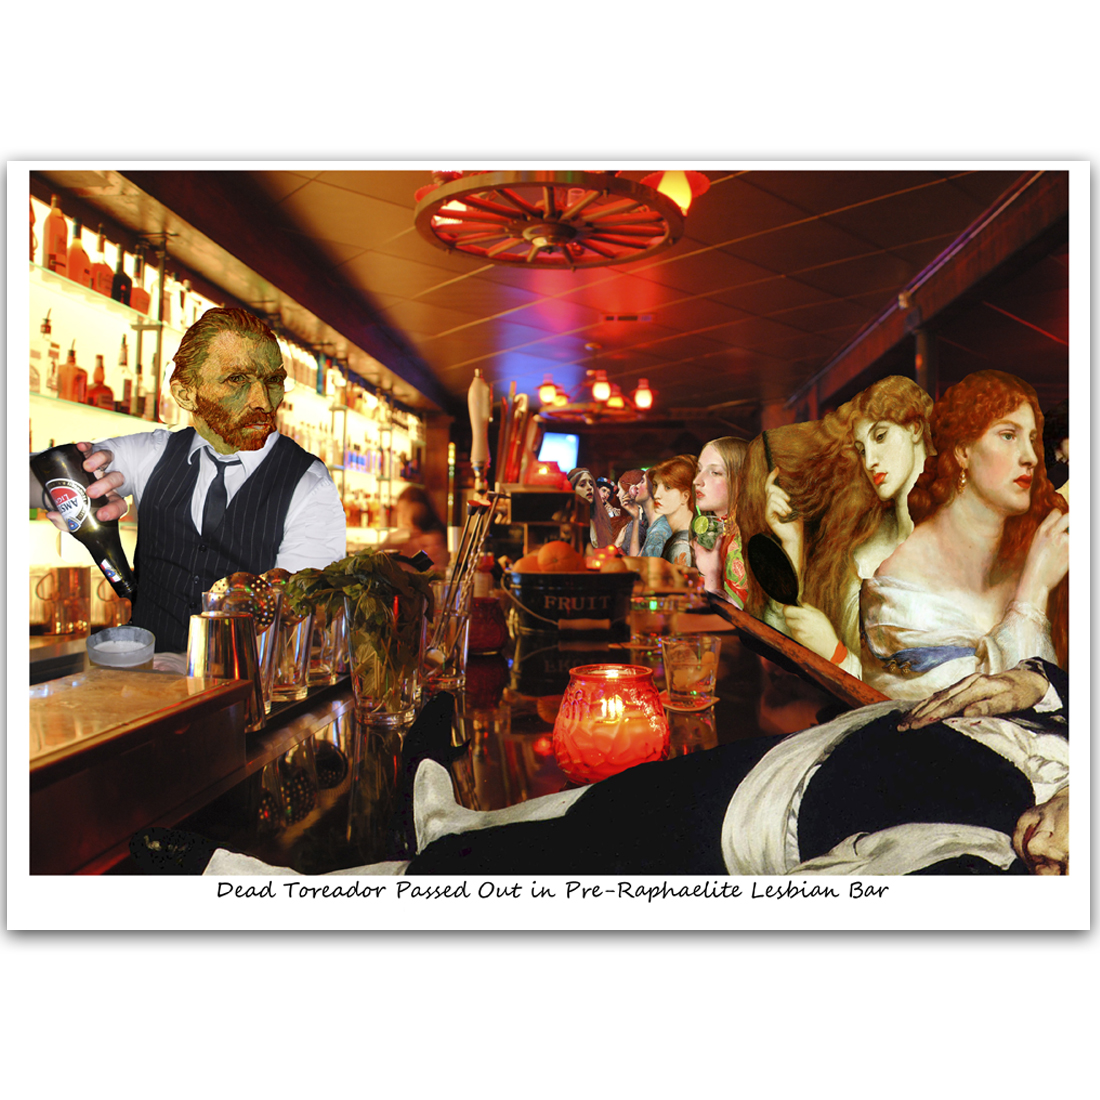 C468 Dead Toreador Passed Out in Pre-Raphaelite Lesbian Bar